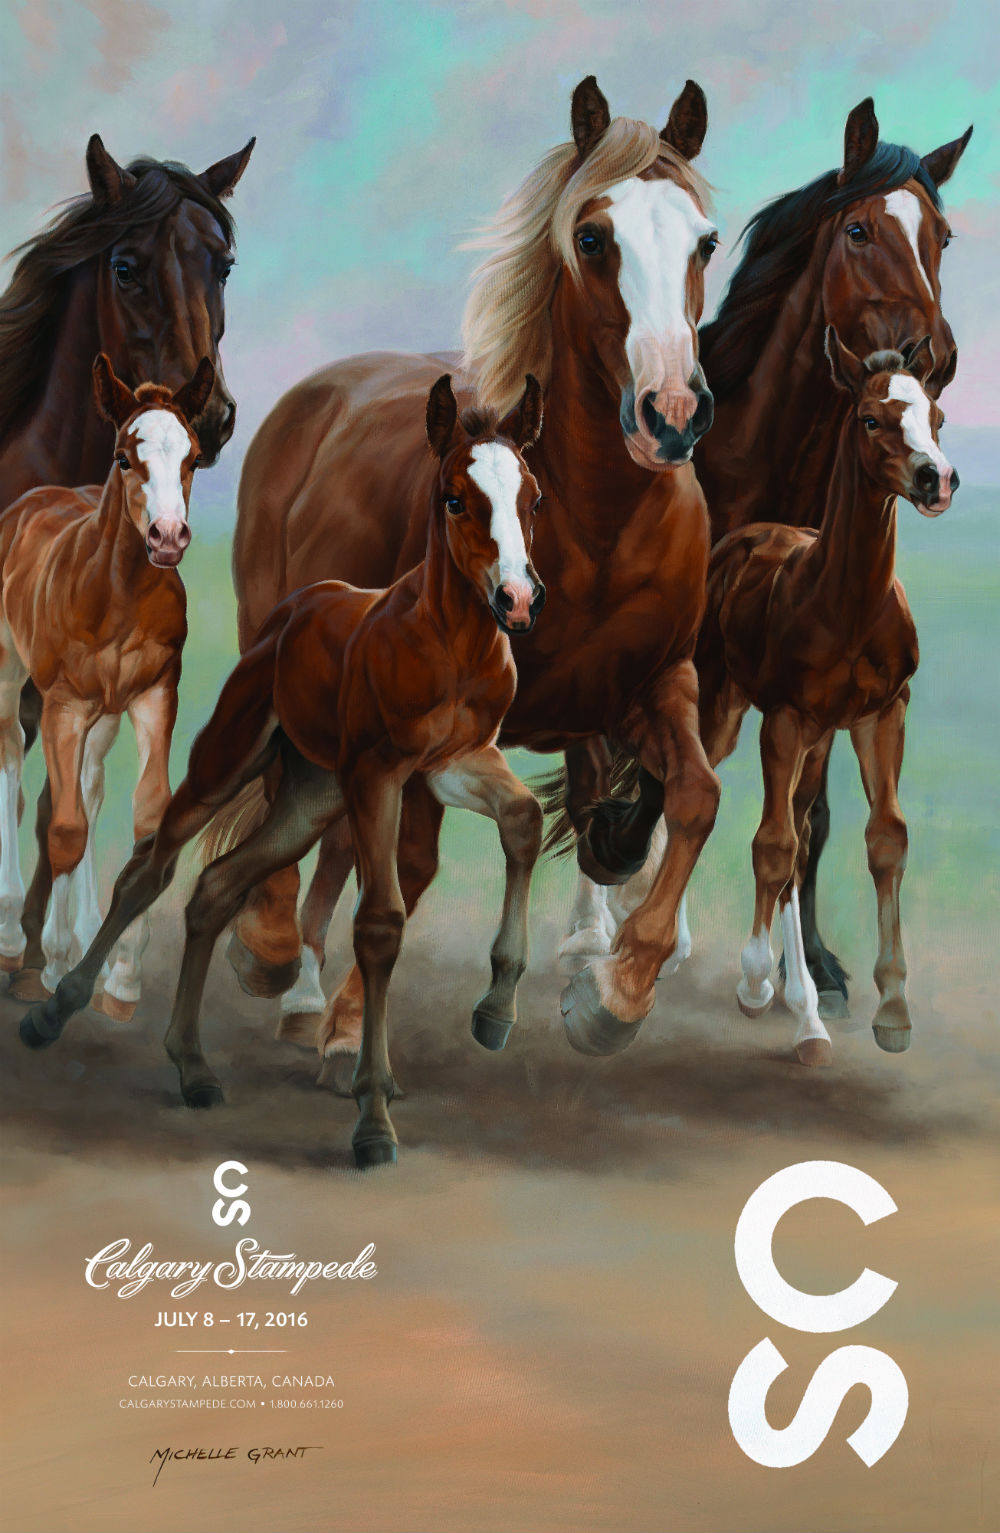 2016 Calgary Stampede Poster Artwork Pays Homage To